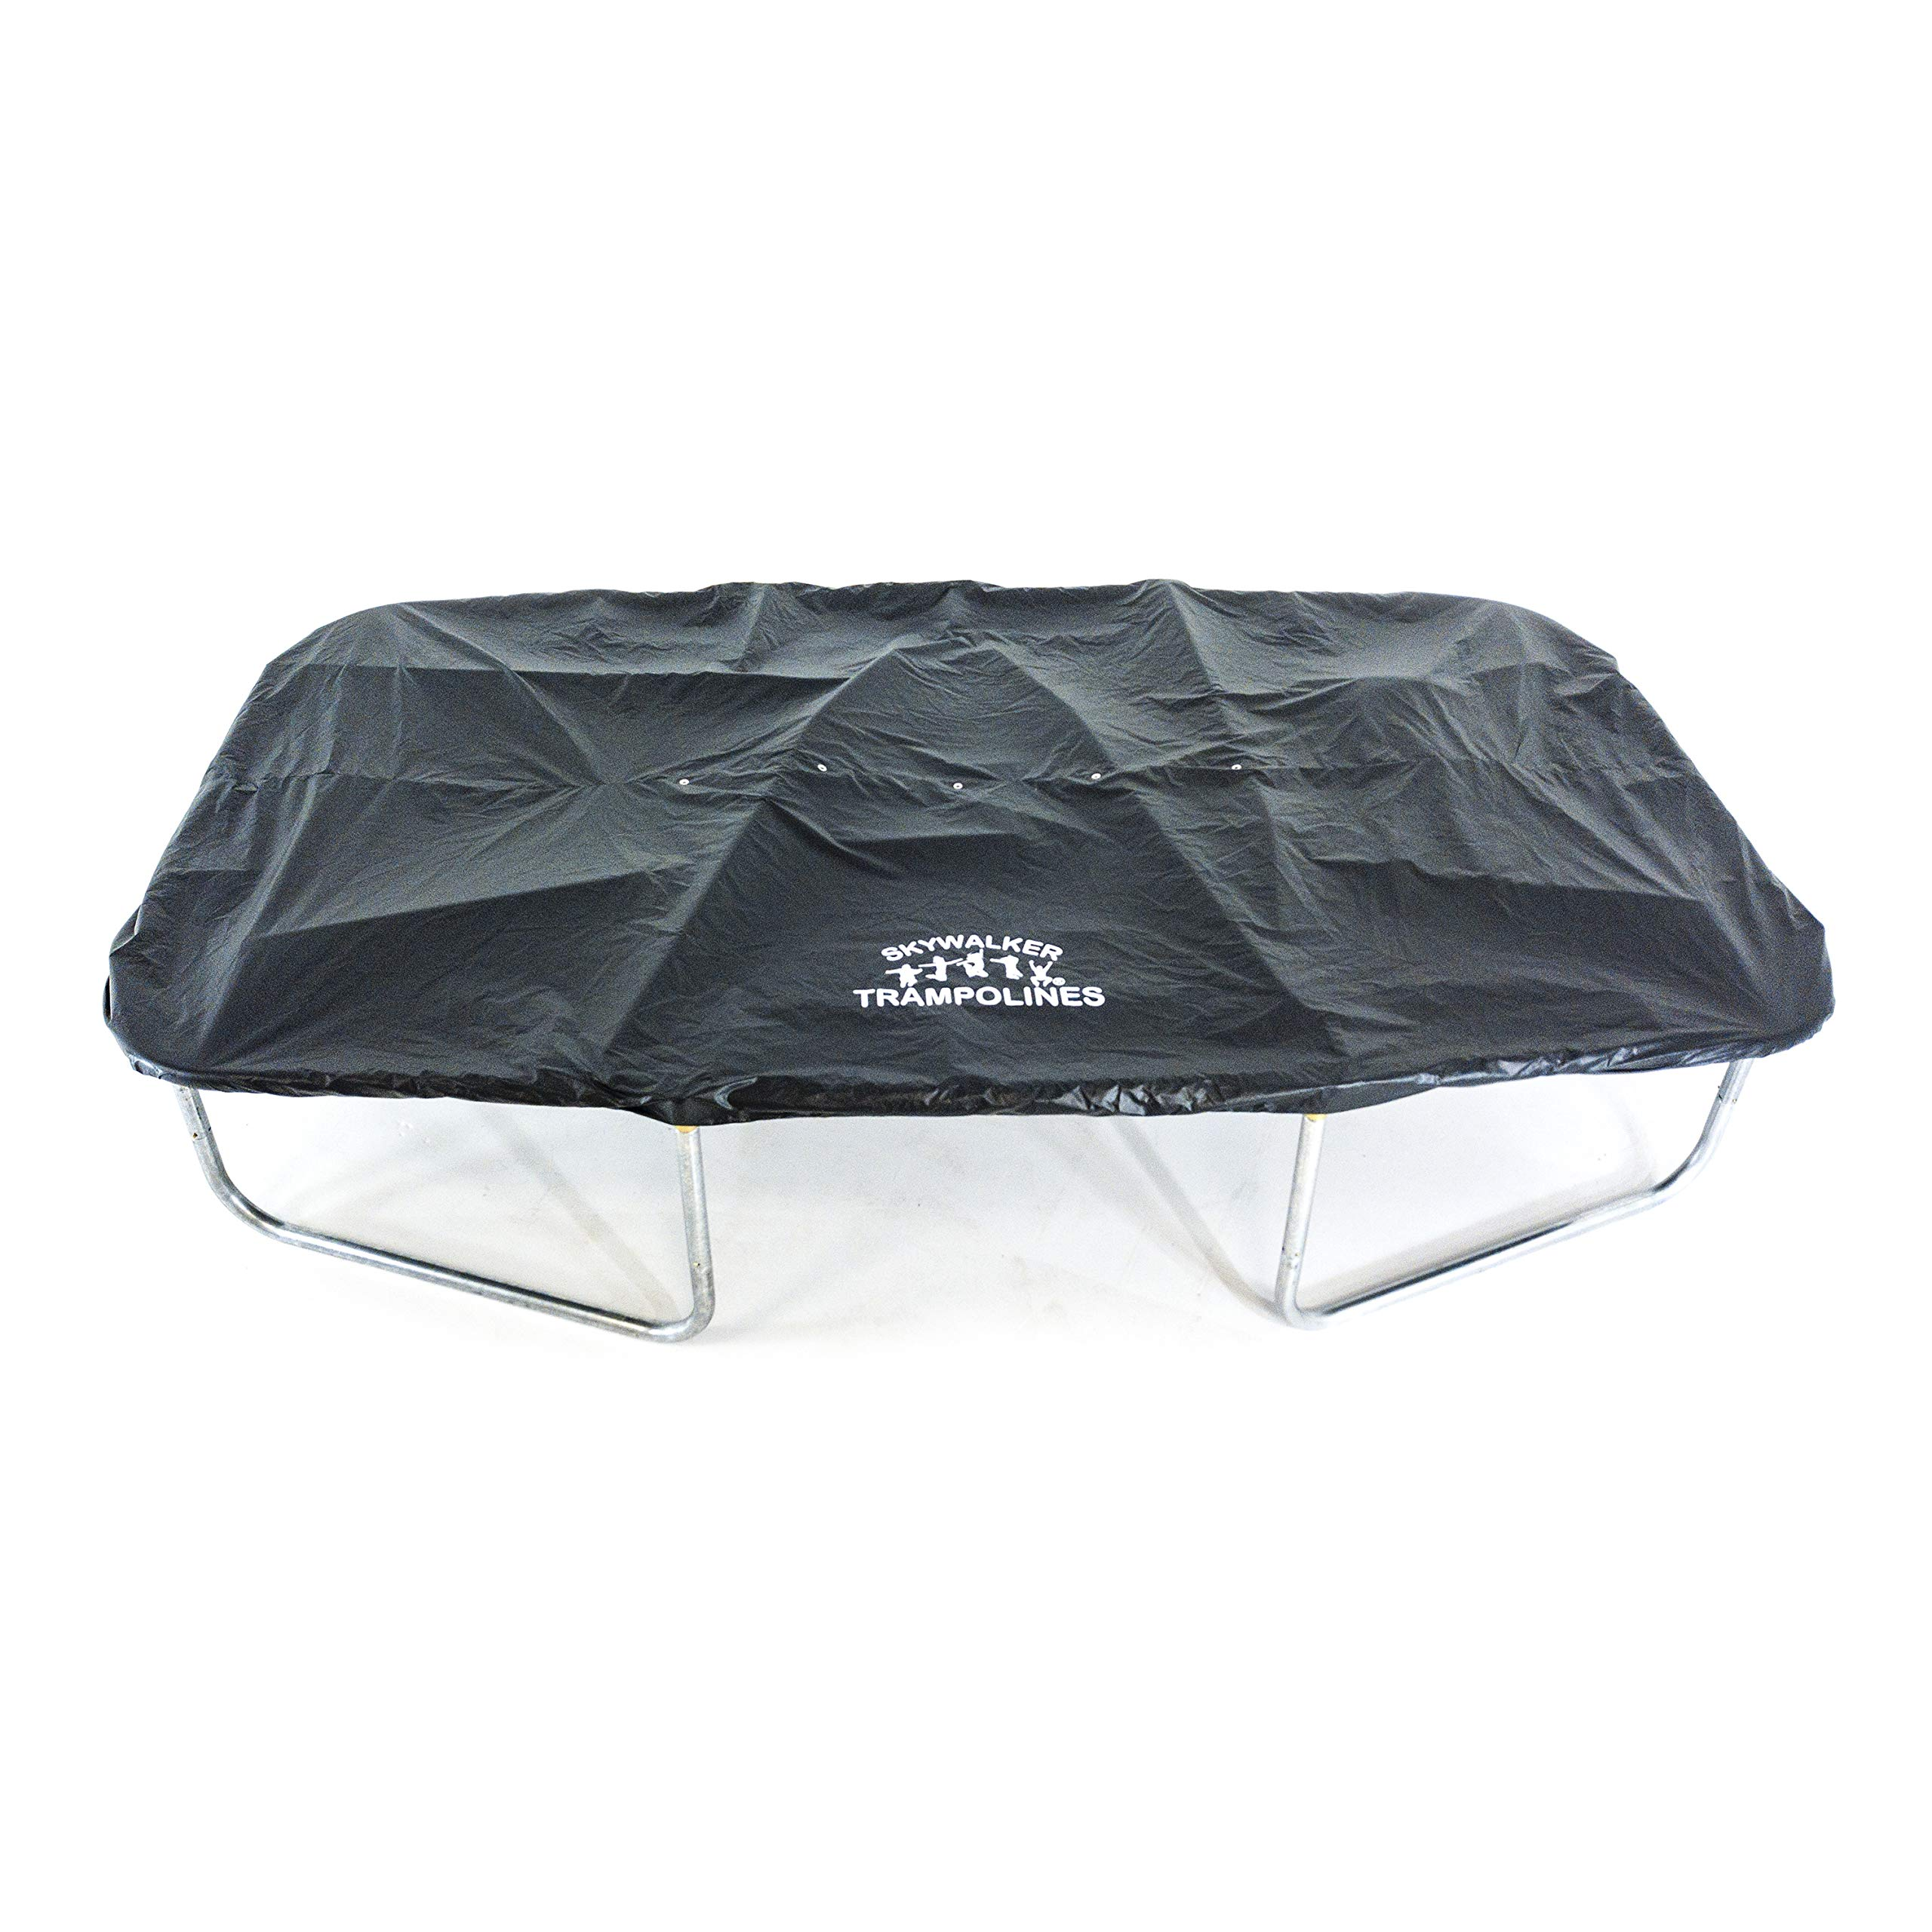 Skywalker Trampolines Accessory Weather Cover - 14' Rectangle by Skywalker Trampolines